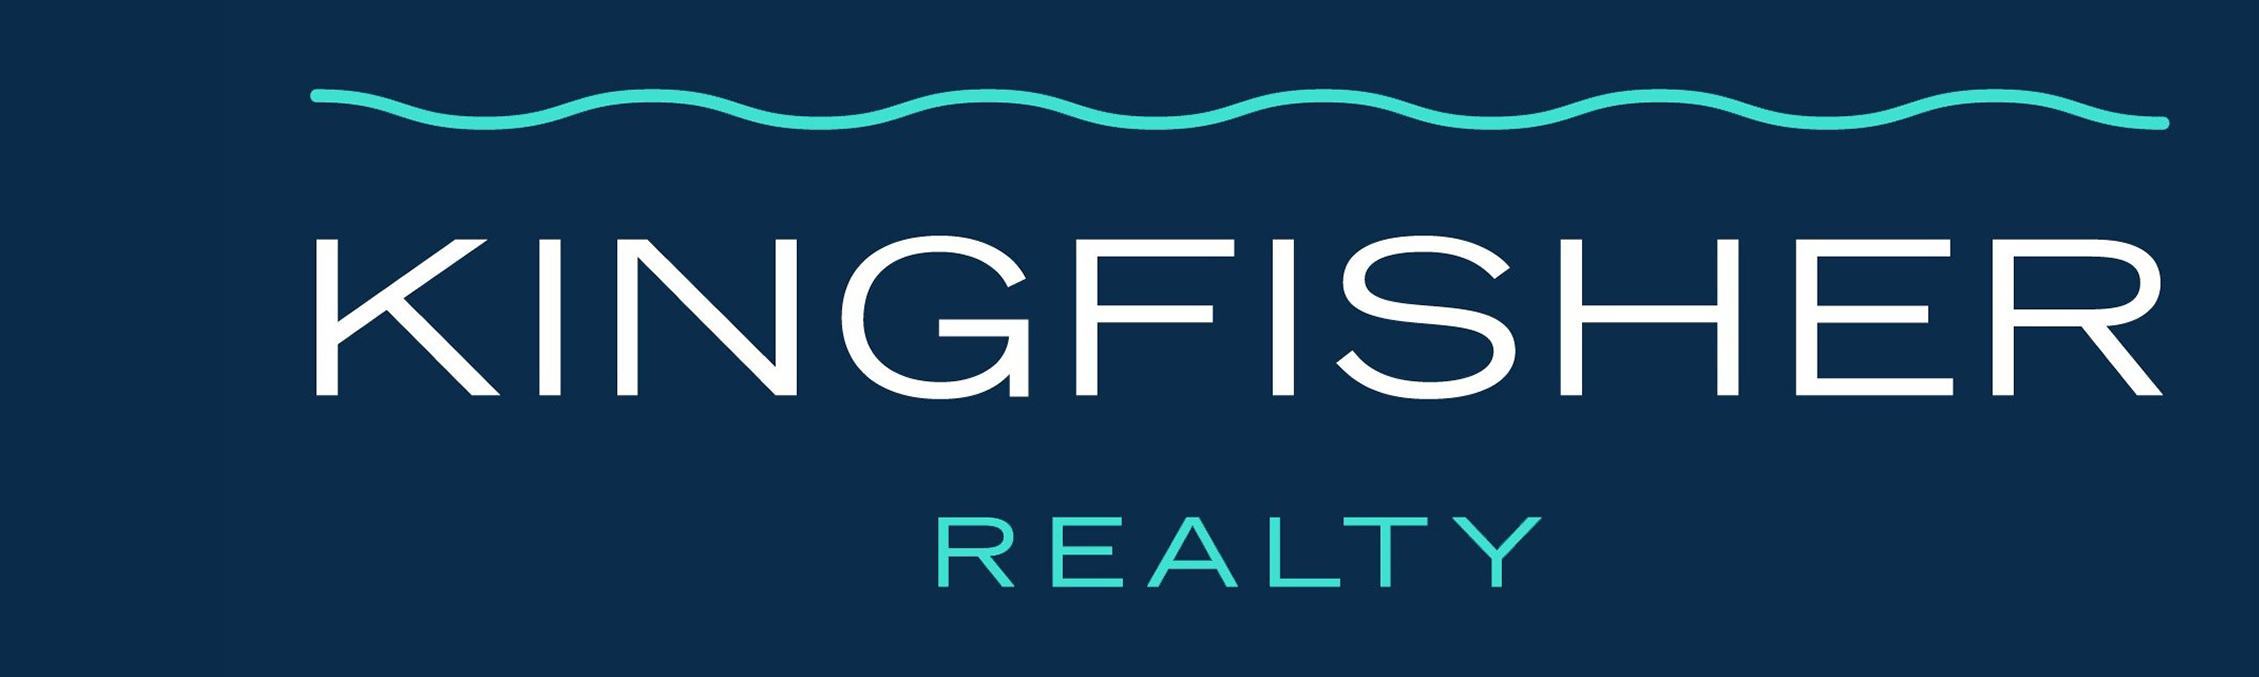 Kingfisher Realty Burleigh - logo